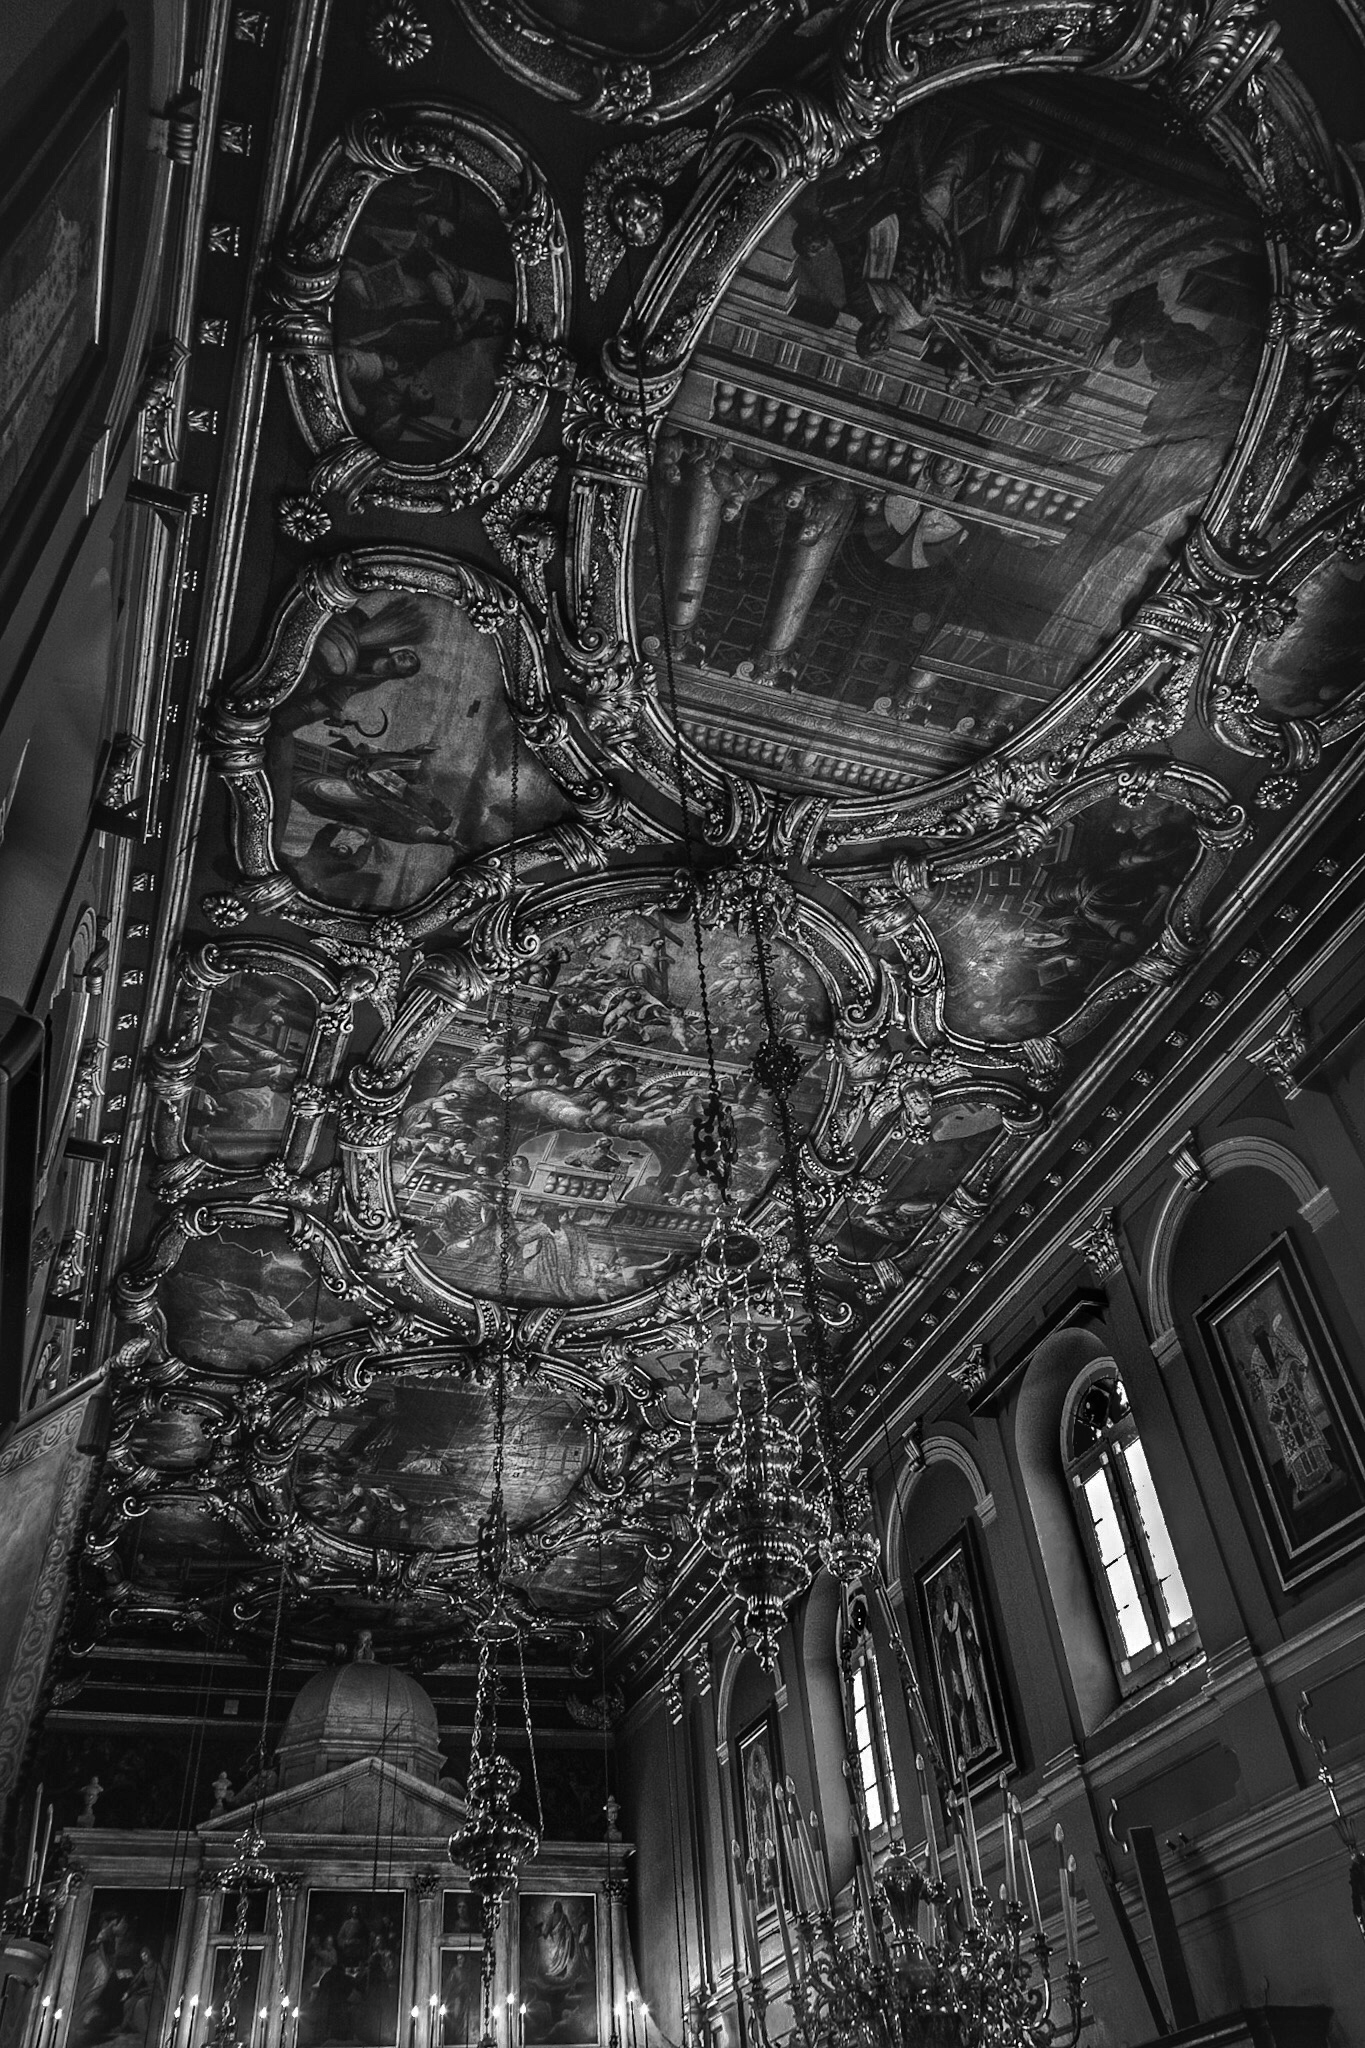 Church ceiling - black and white interior photography by Rick McEvoy